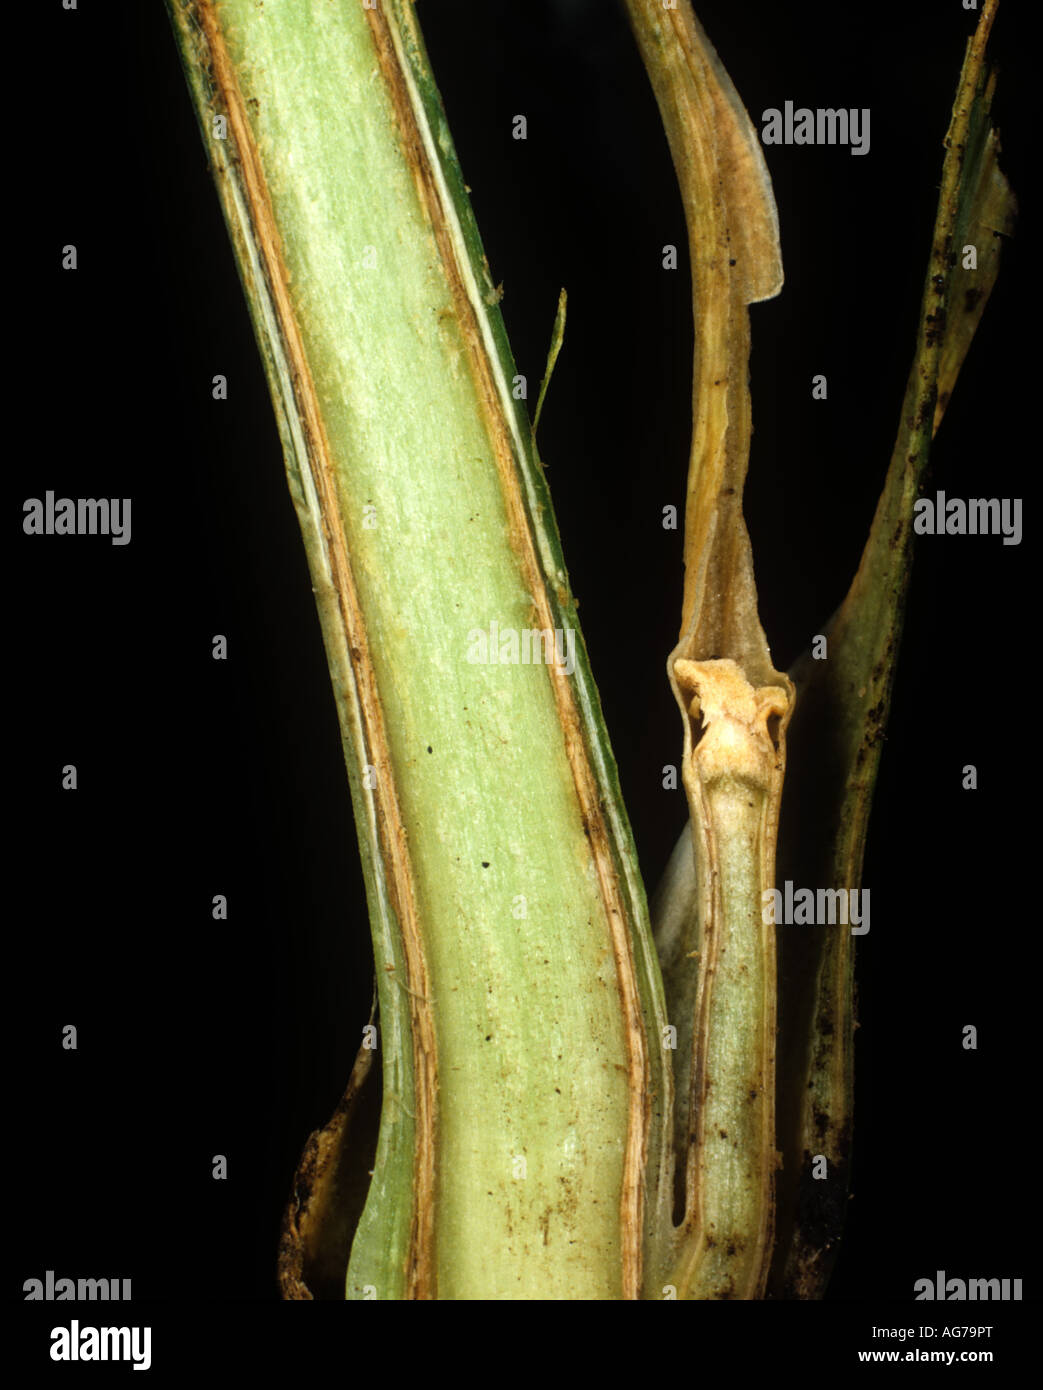 Section of a carnation stem showing vascular tissue damaged by Fusarium oxysporum - Stock Image